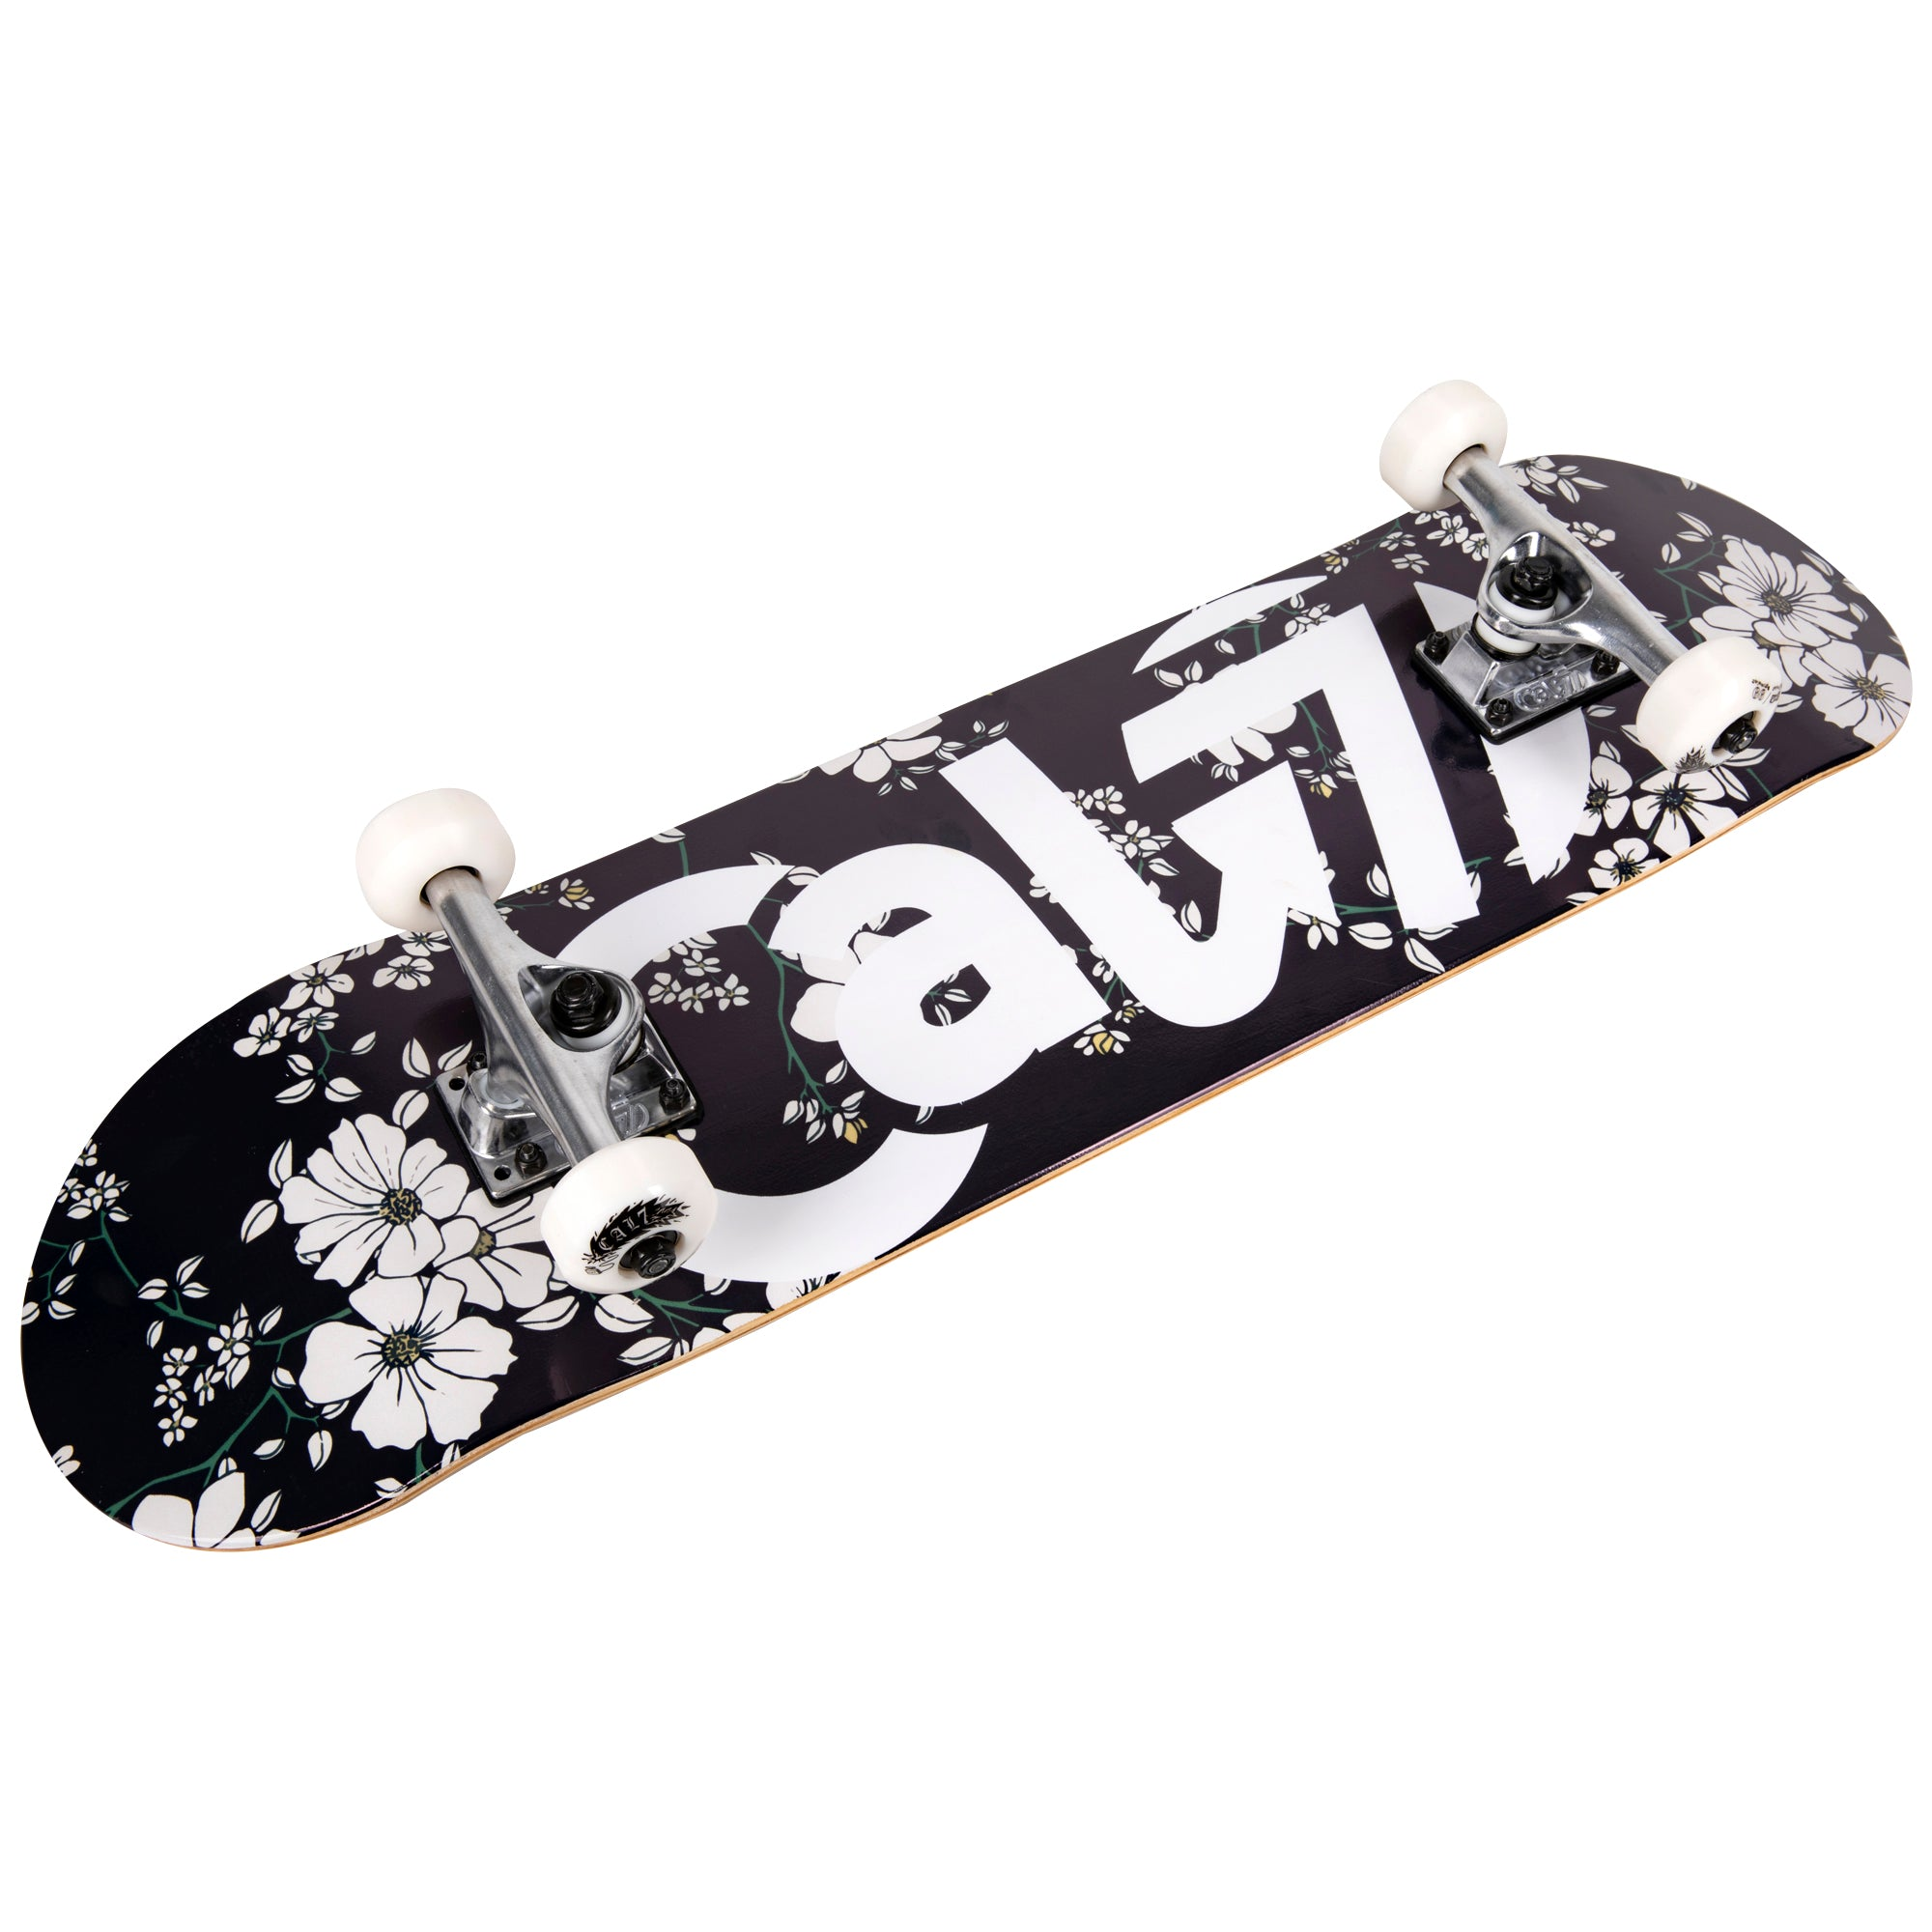 Cal 7 Complete 7.5/7.75/8-Inch Skateboard Petal with Logo and Floral Vine Graphic